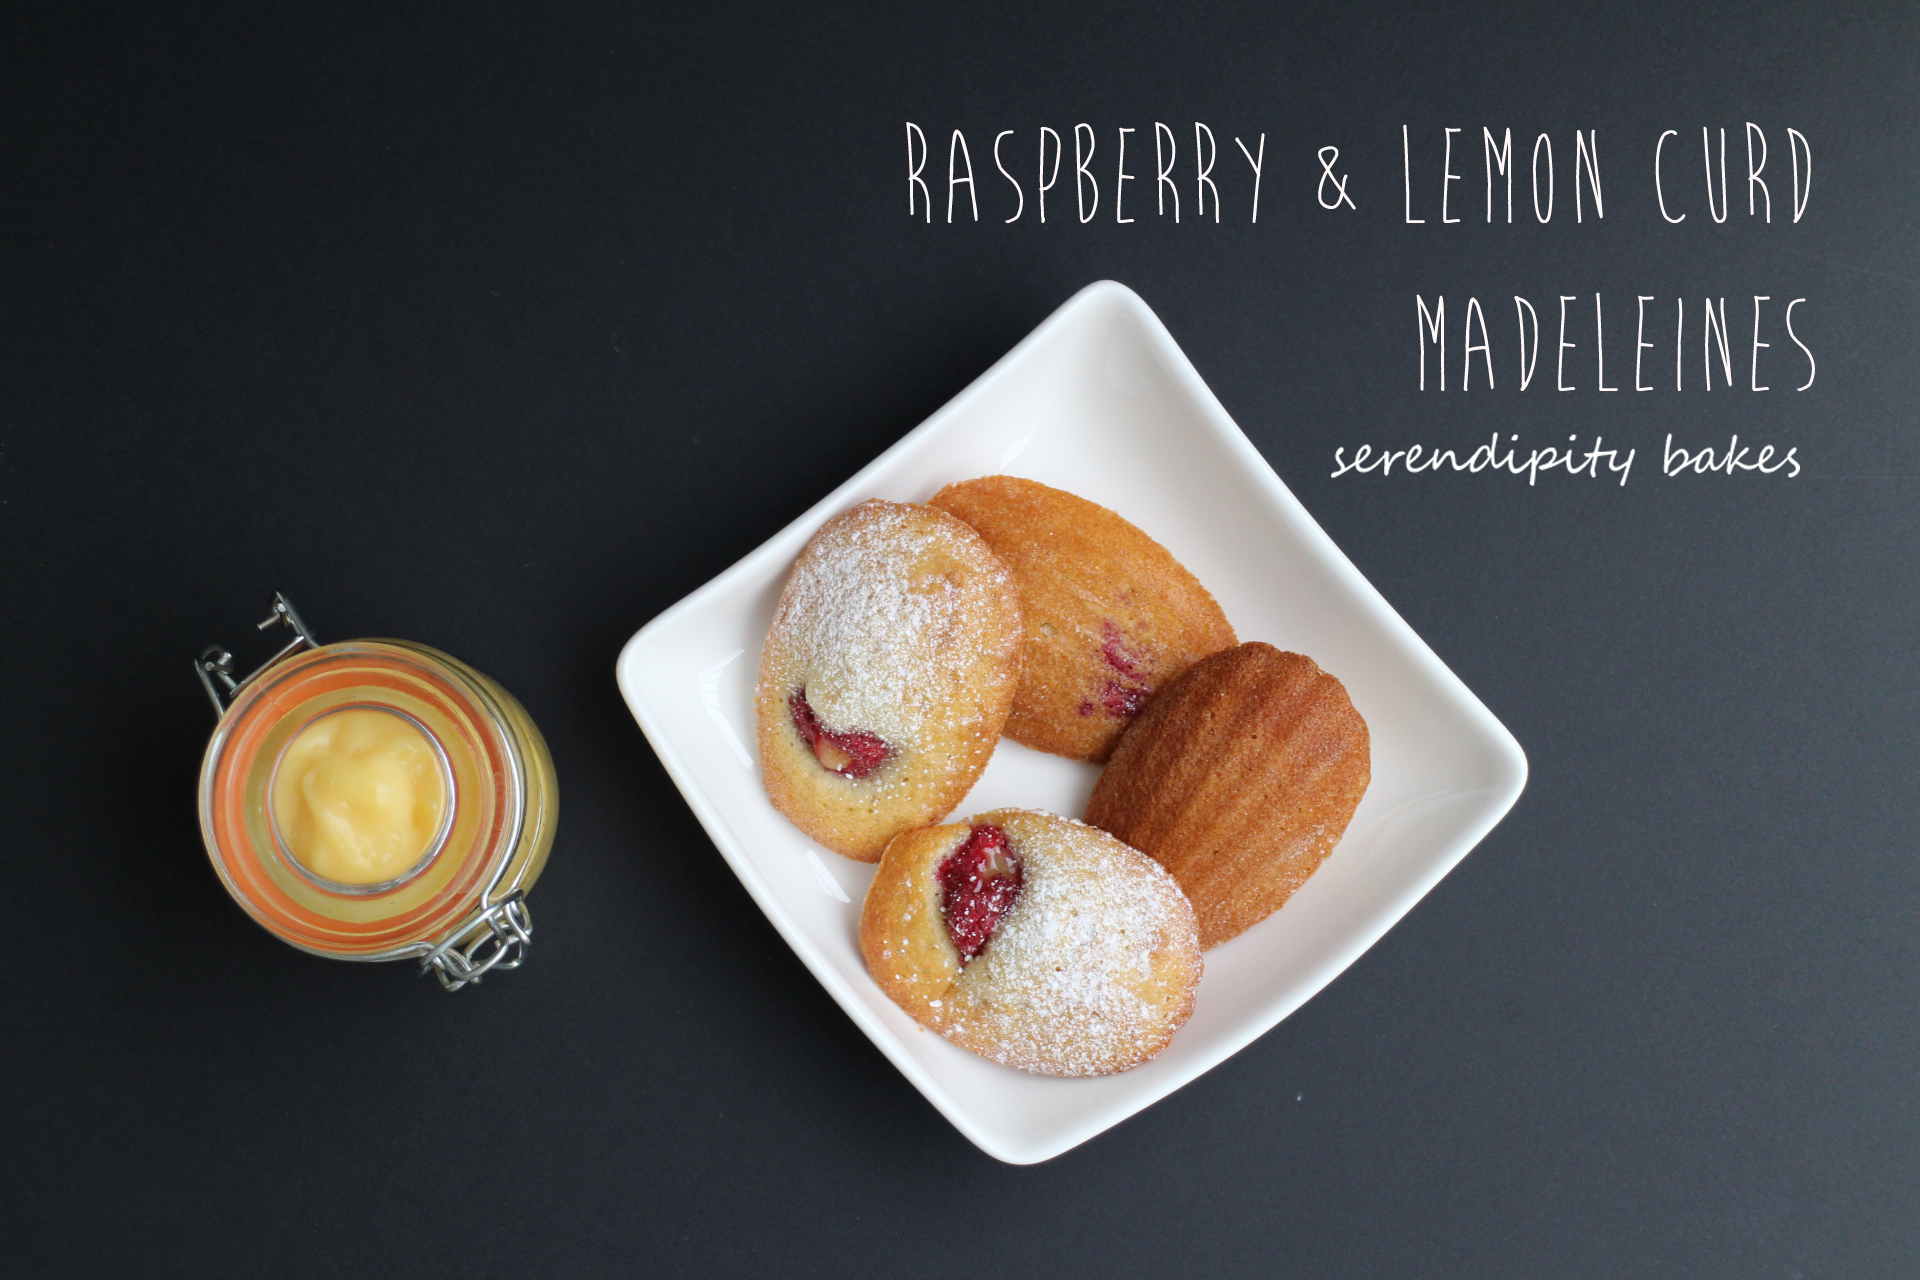 Raspberry & Lemon Curd Madelelines Cover_edited-1.jpg